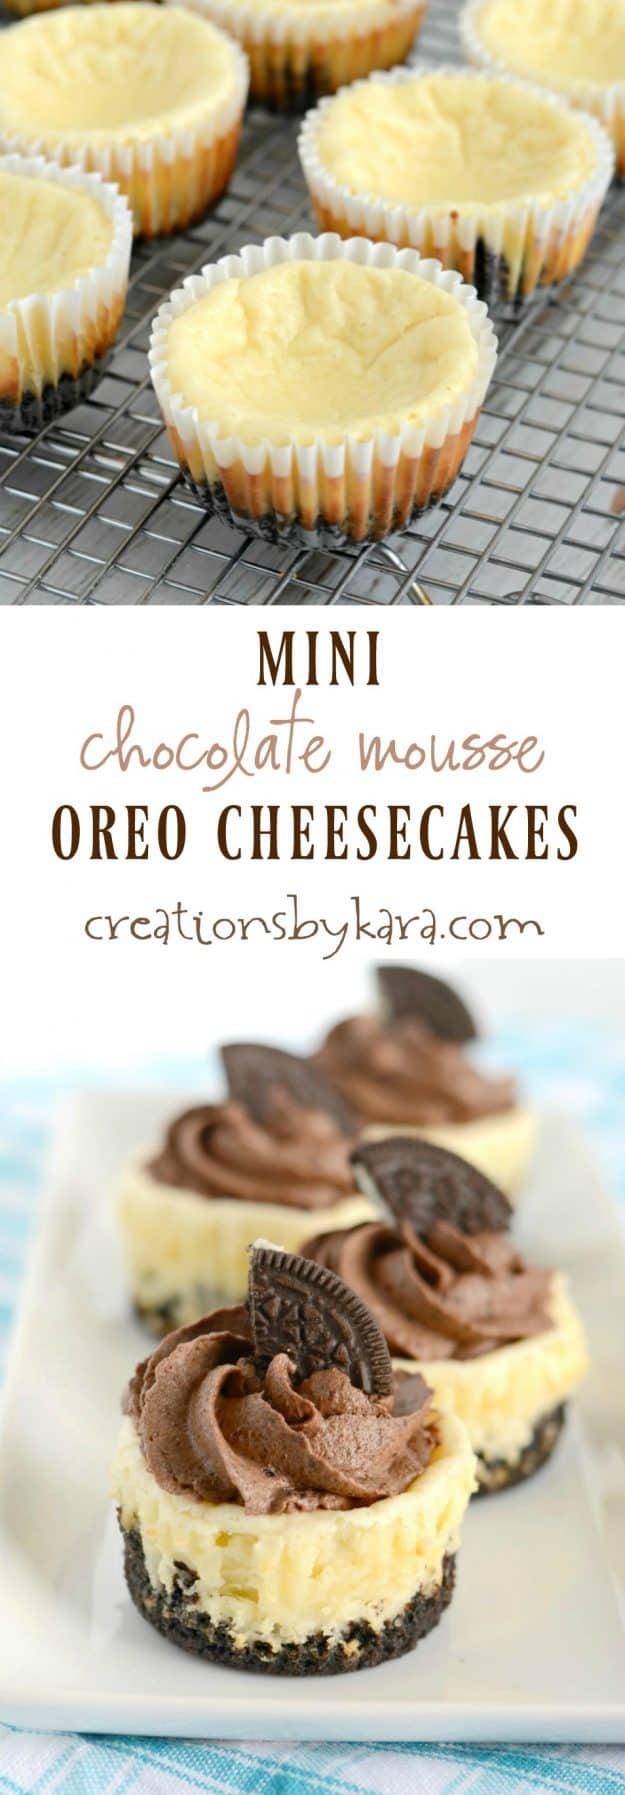 Mini Oreo Cheesecakes with Chocolate Mousse - Creations by Kara